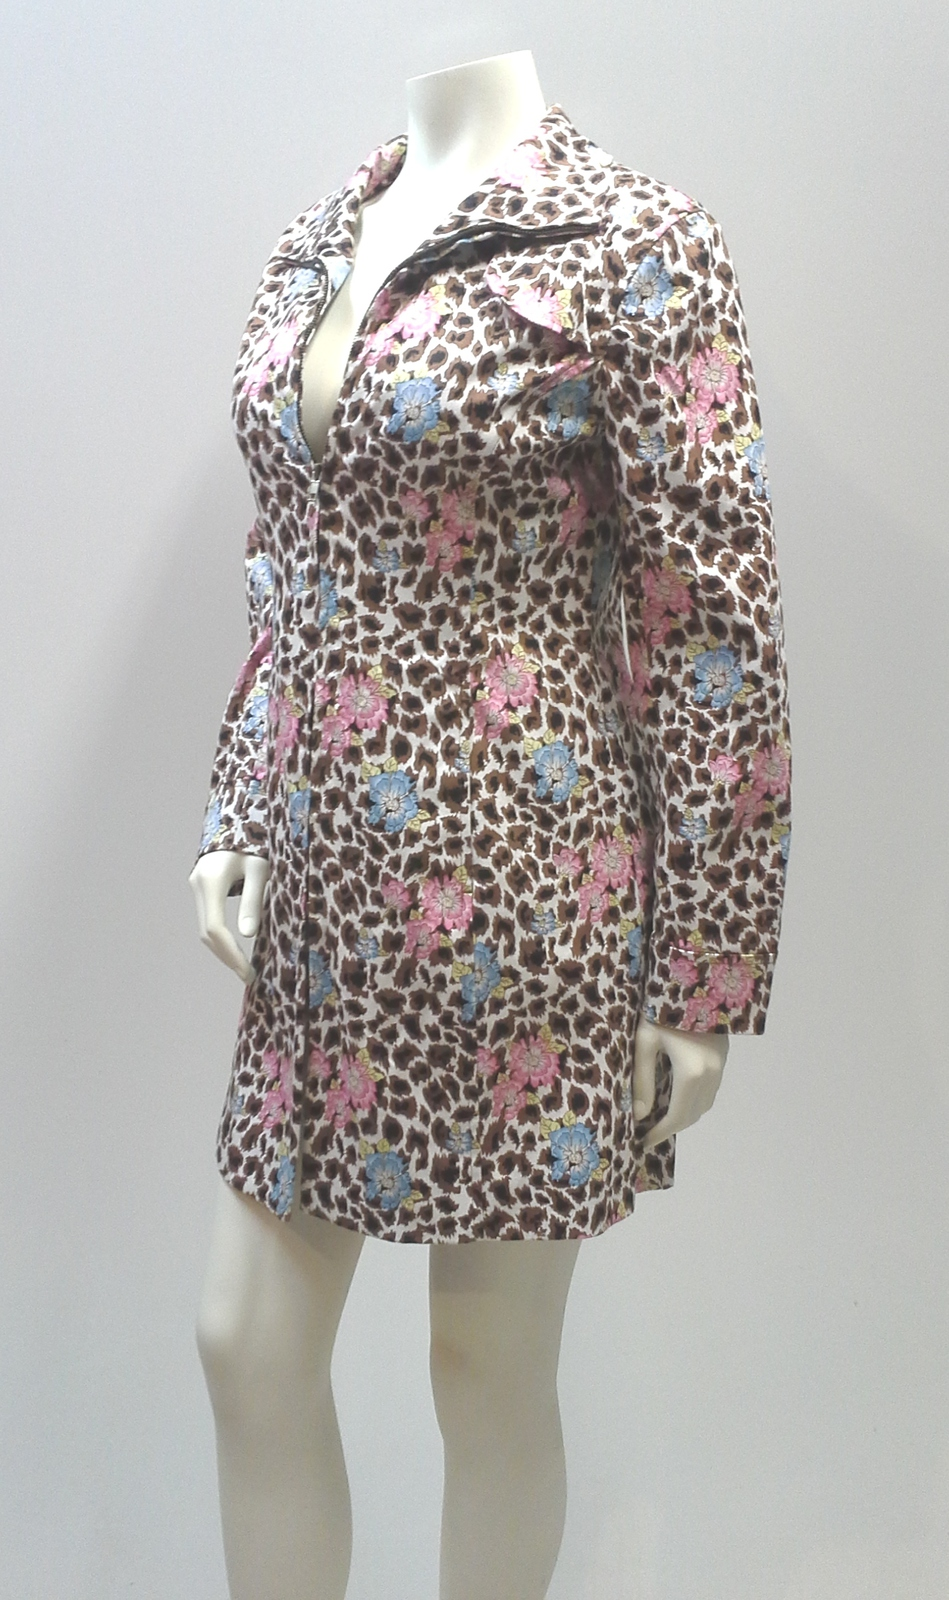 Primary image for Nicole Miller Coat, Animal Print Floral Cotton Short Trench Coat-Size Small